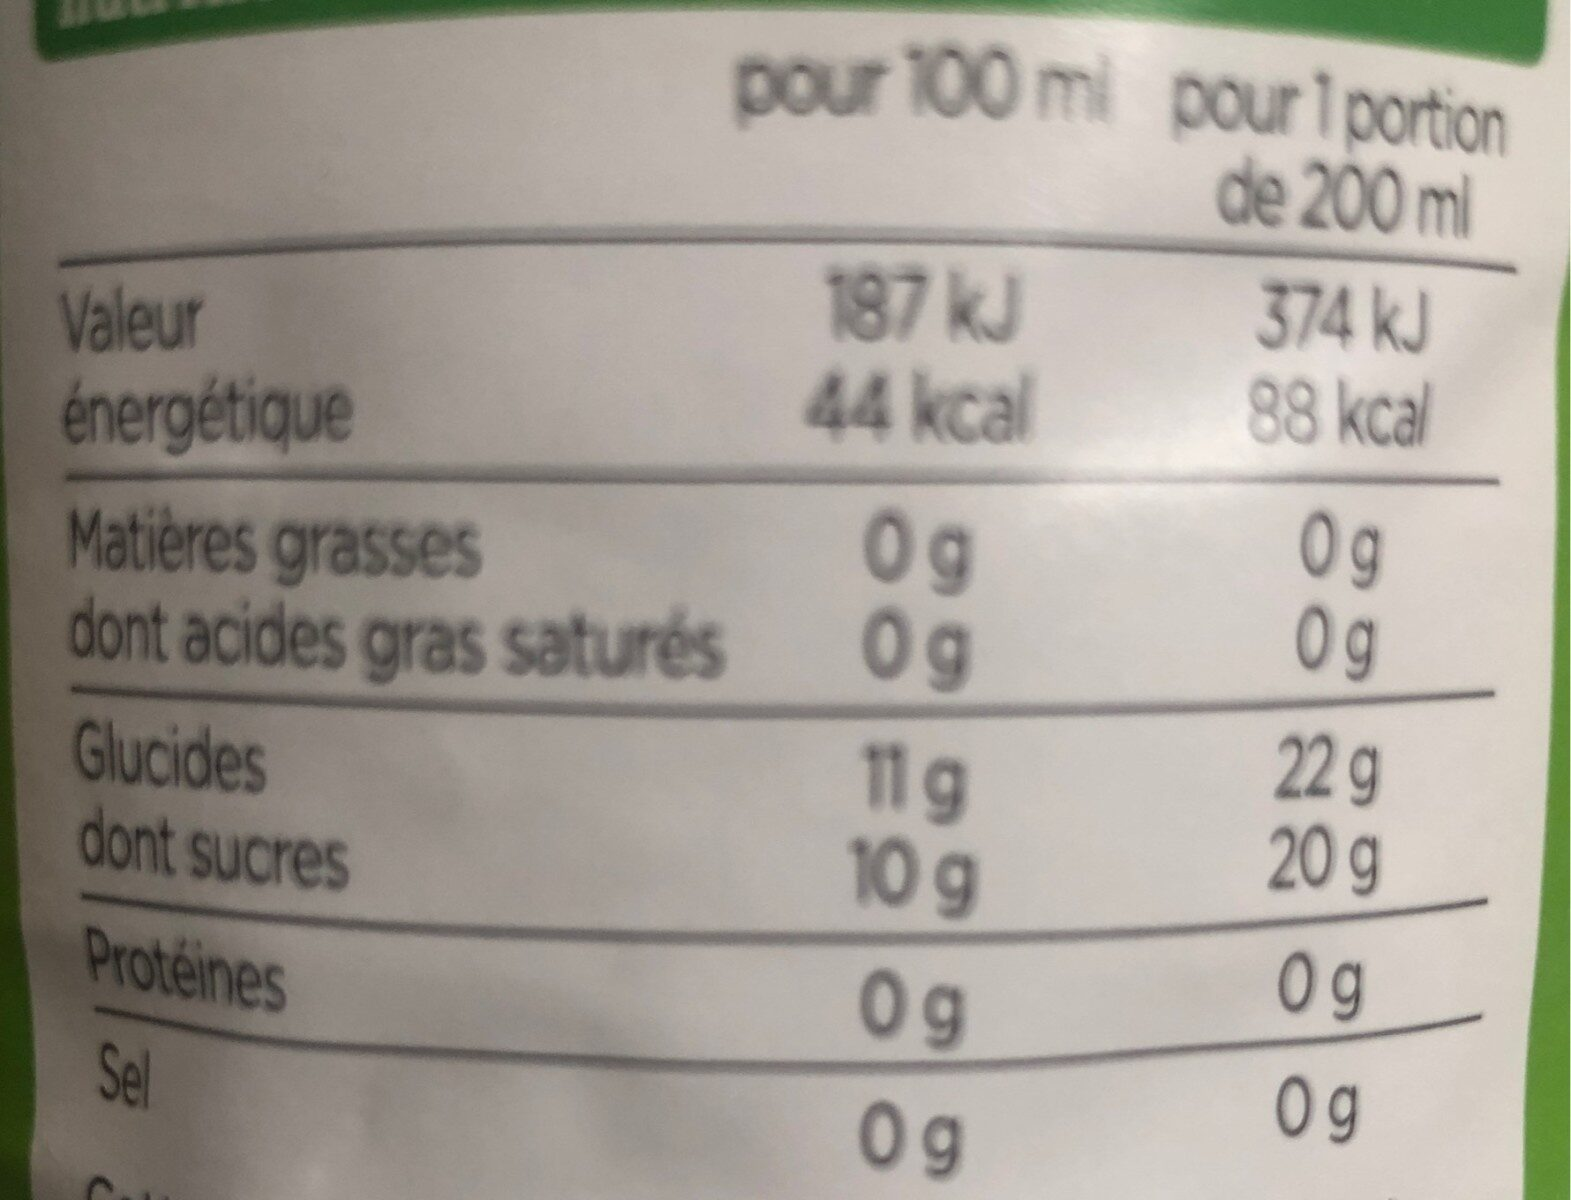 100% pur jus de pomme - Nutrition facts - fr